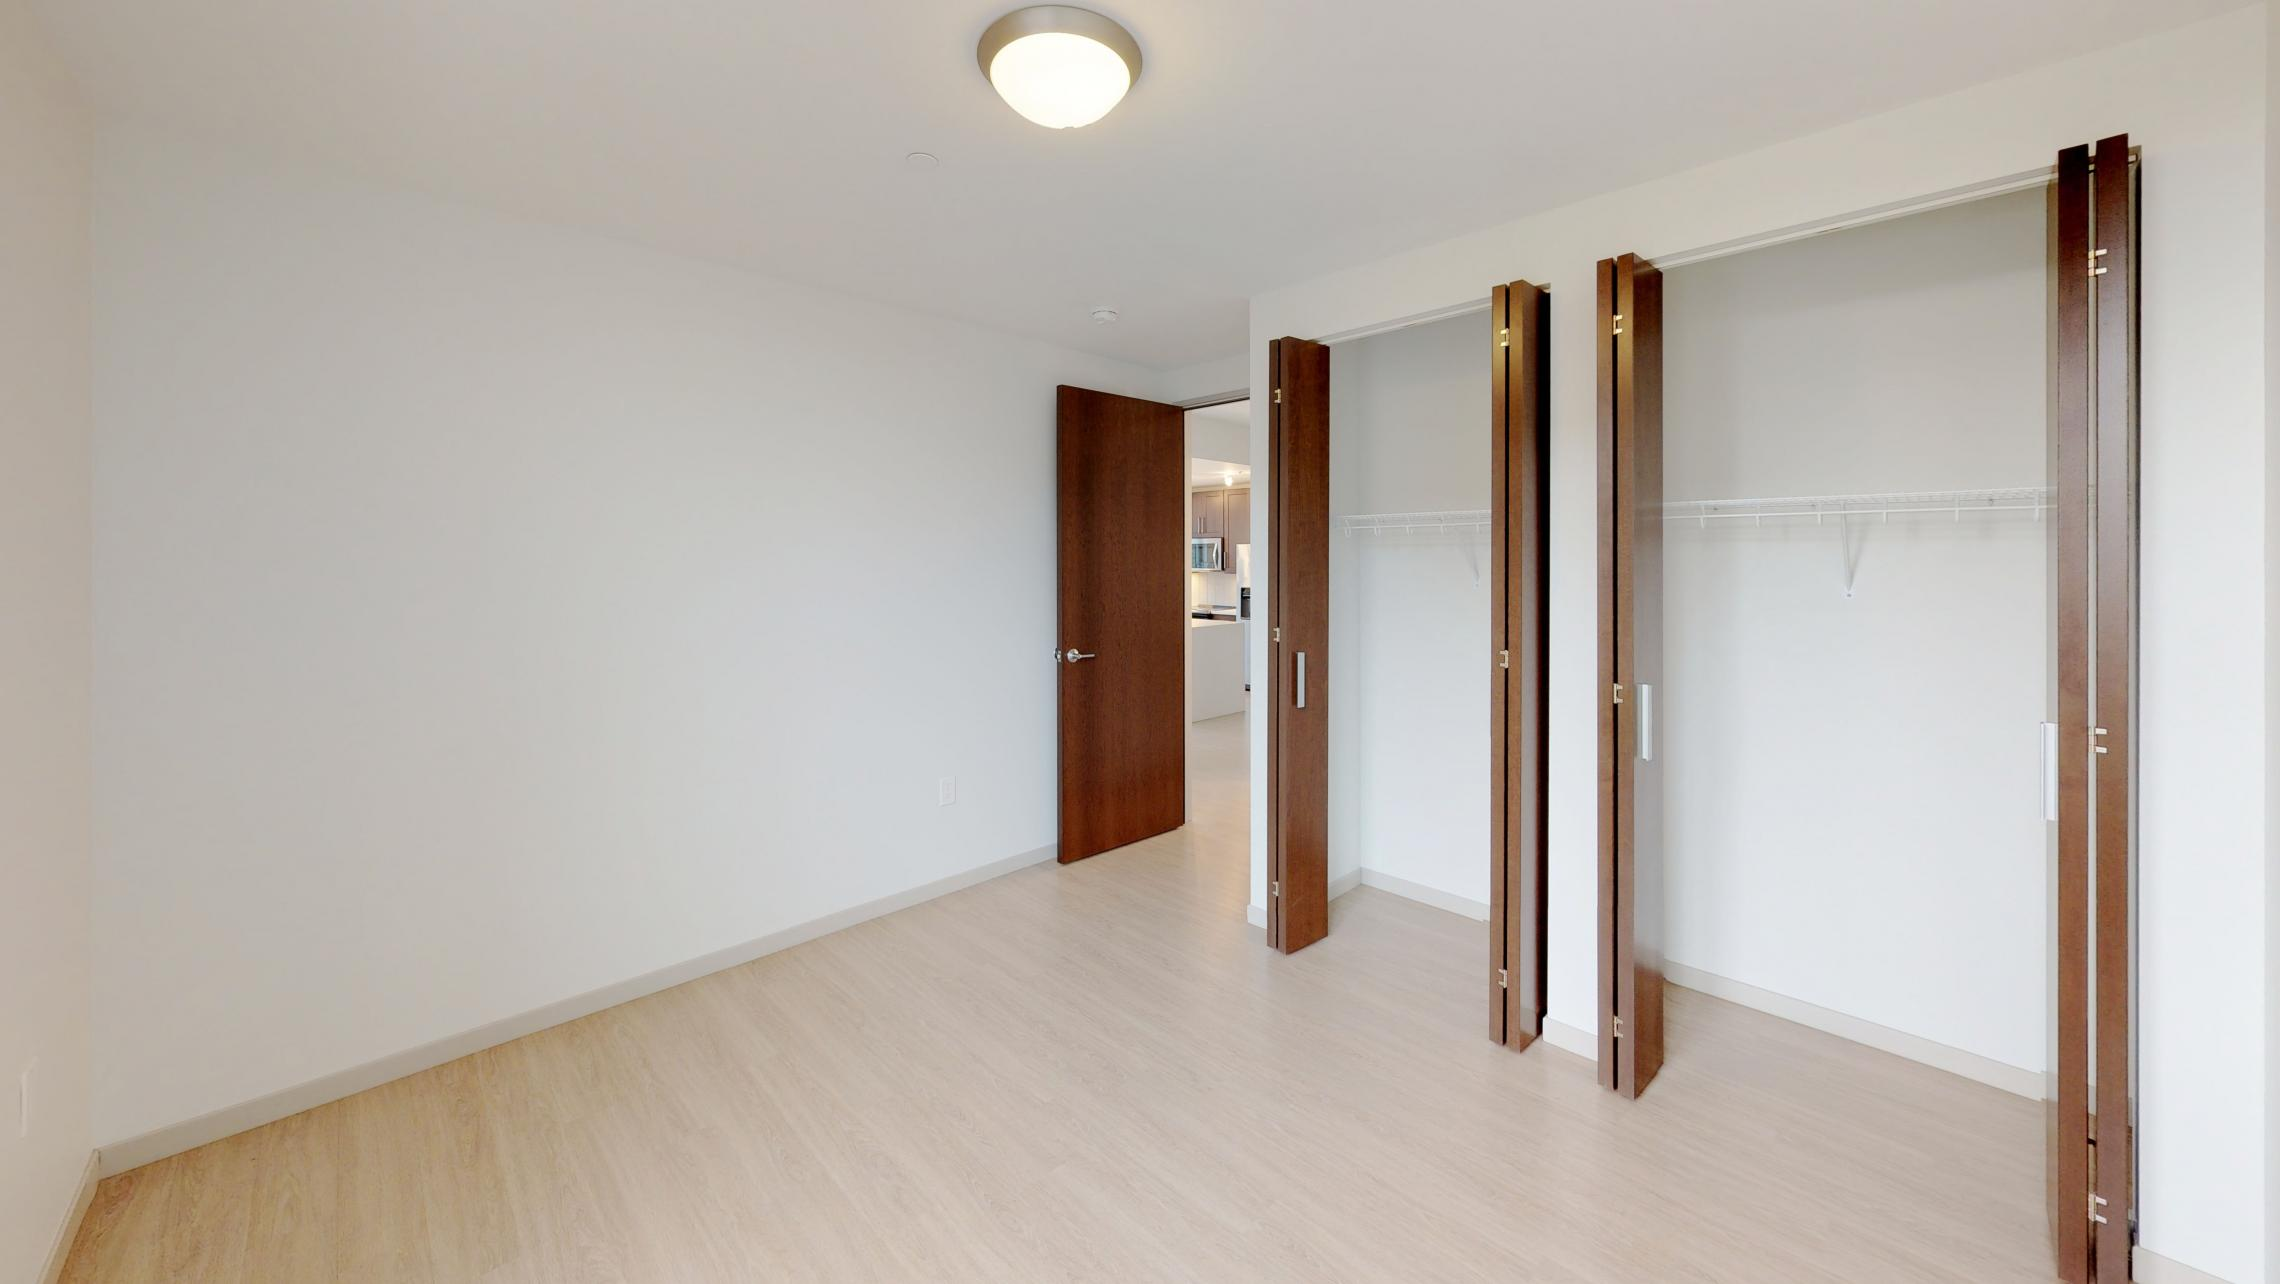 Pressman-601-Apartment-Two-Bedroom-Downtown-Madison-Upscale-Luxury-Modern-Corner-Balcony-Capitol-Lake-View-Closet